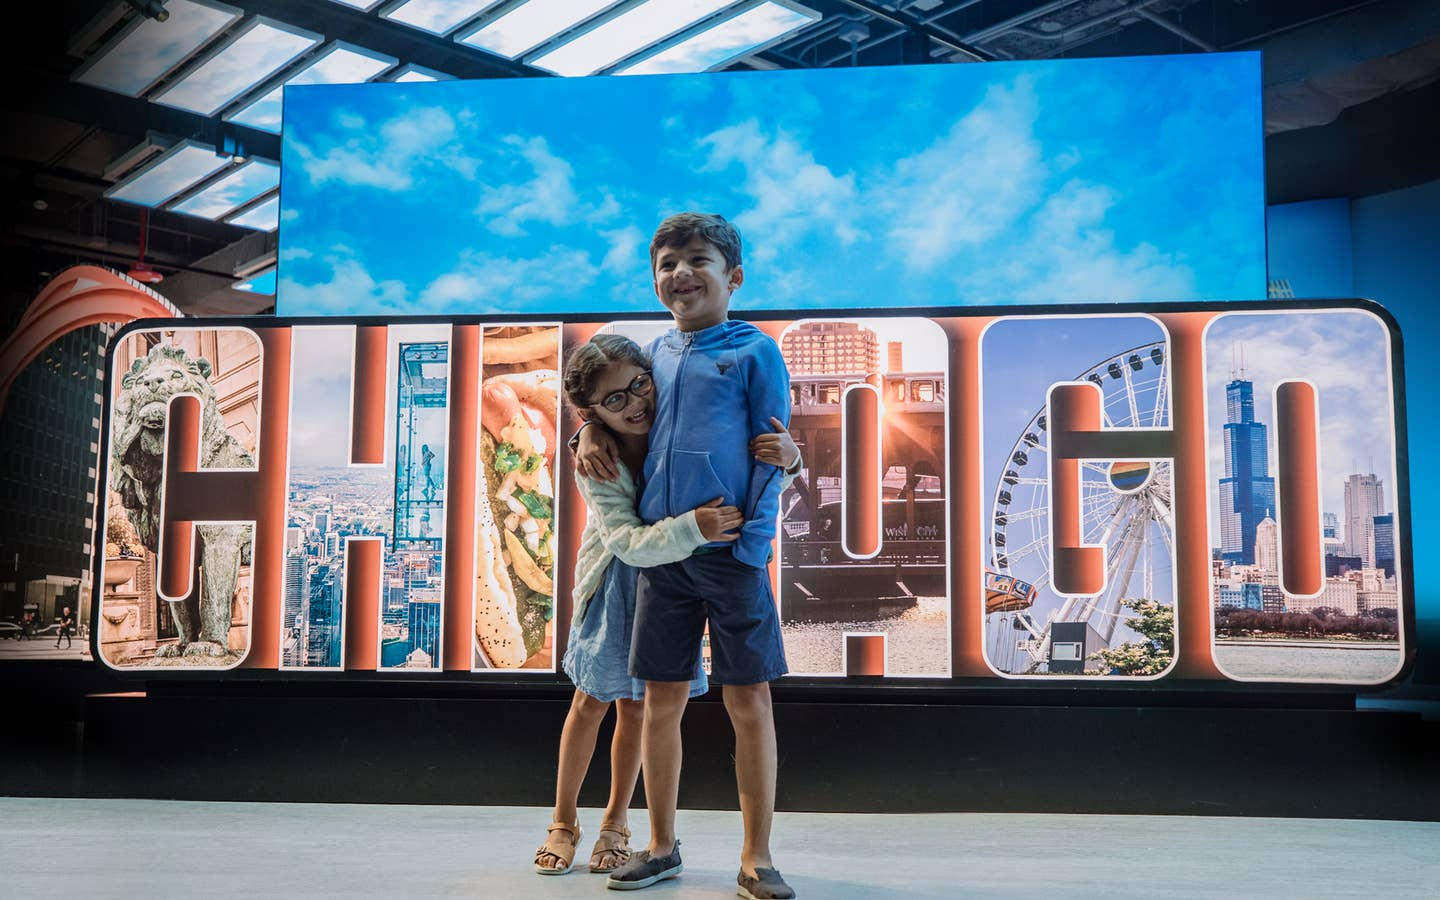 Kids hugging in front of Chicago sign at Chicago, Illinois